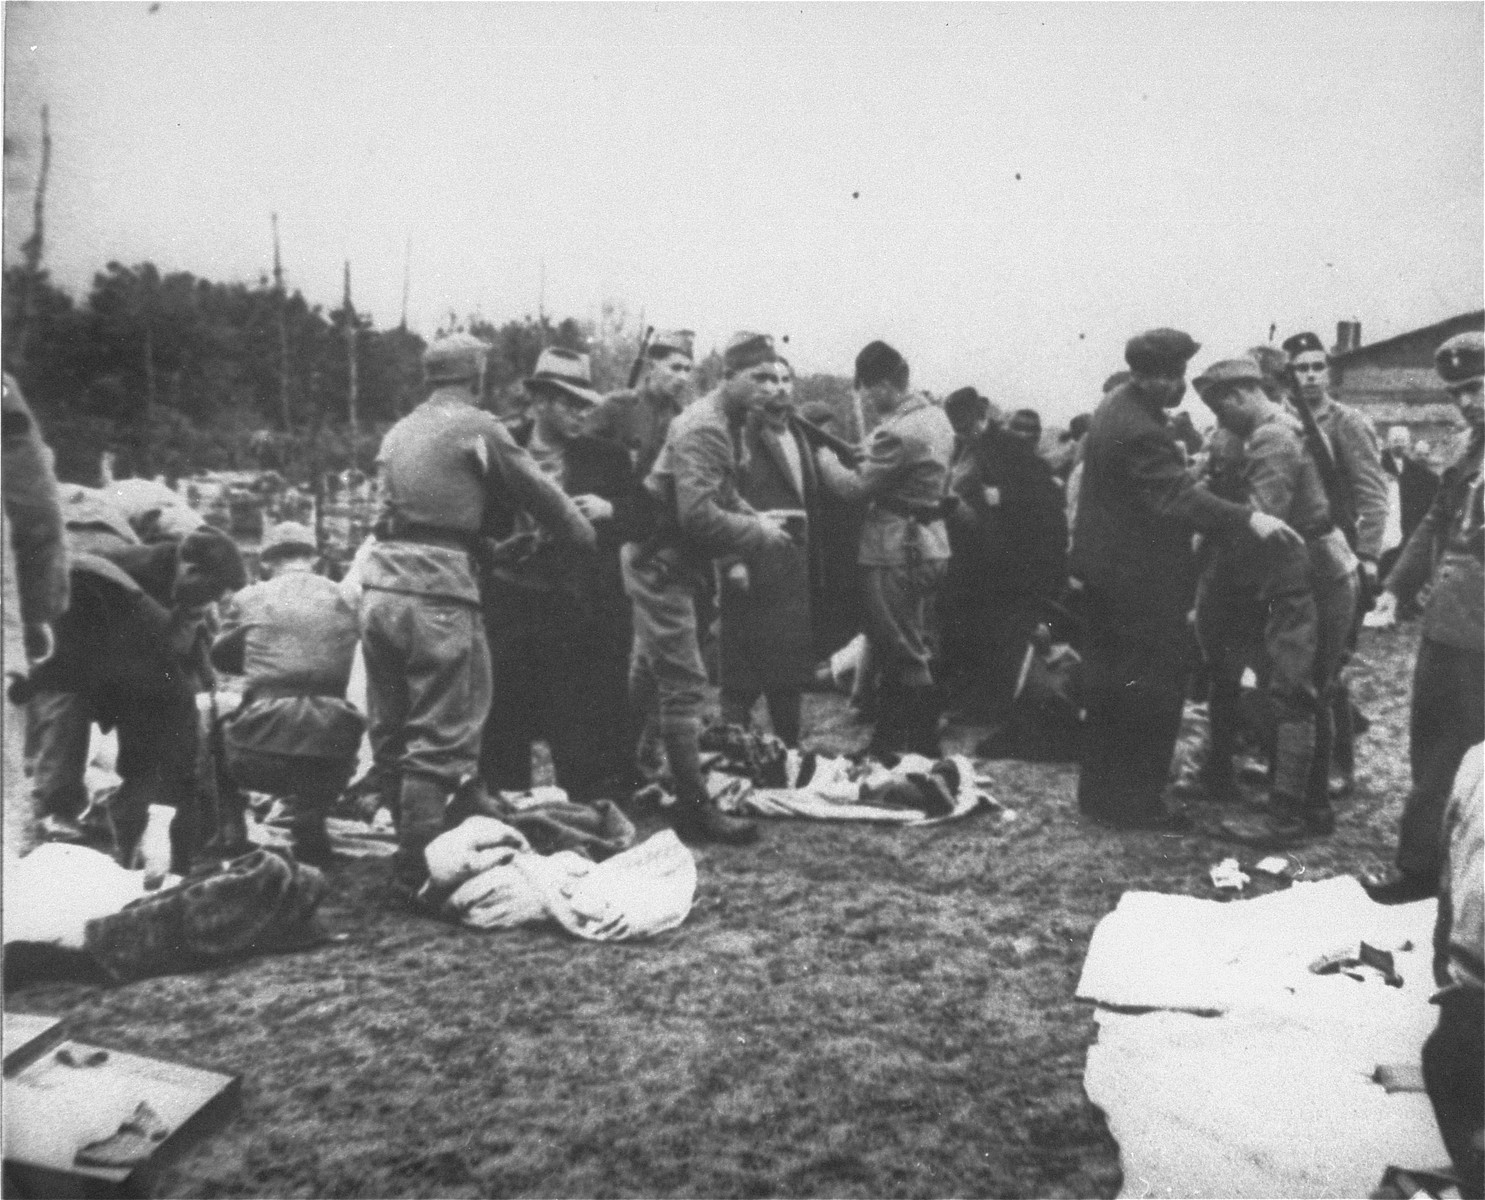 Ustasa guards in the Jasenovac concentration camp strip newly arrived prisoners of their personal possessions.  Andor Willer is pictured in the left foreground (left) in the light colored hat and dark overcoat being manhandled.  Mr. Willer perished in Jasenovac on December 25, 1944, along with his parents, brothers, and sisters.